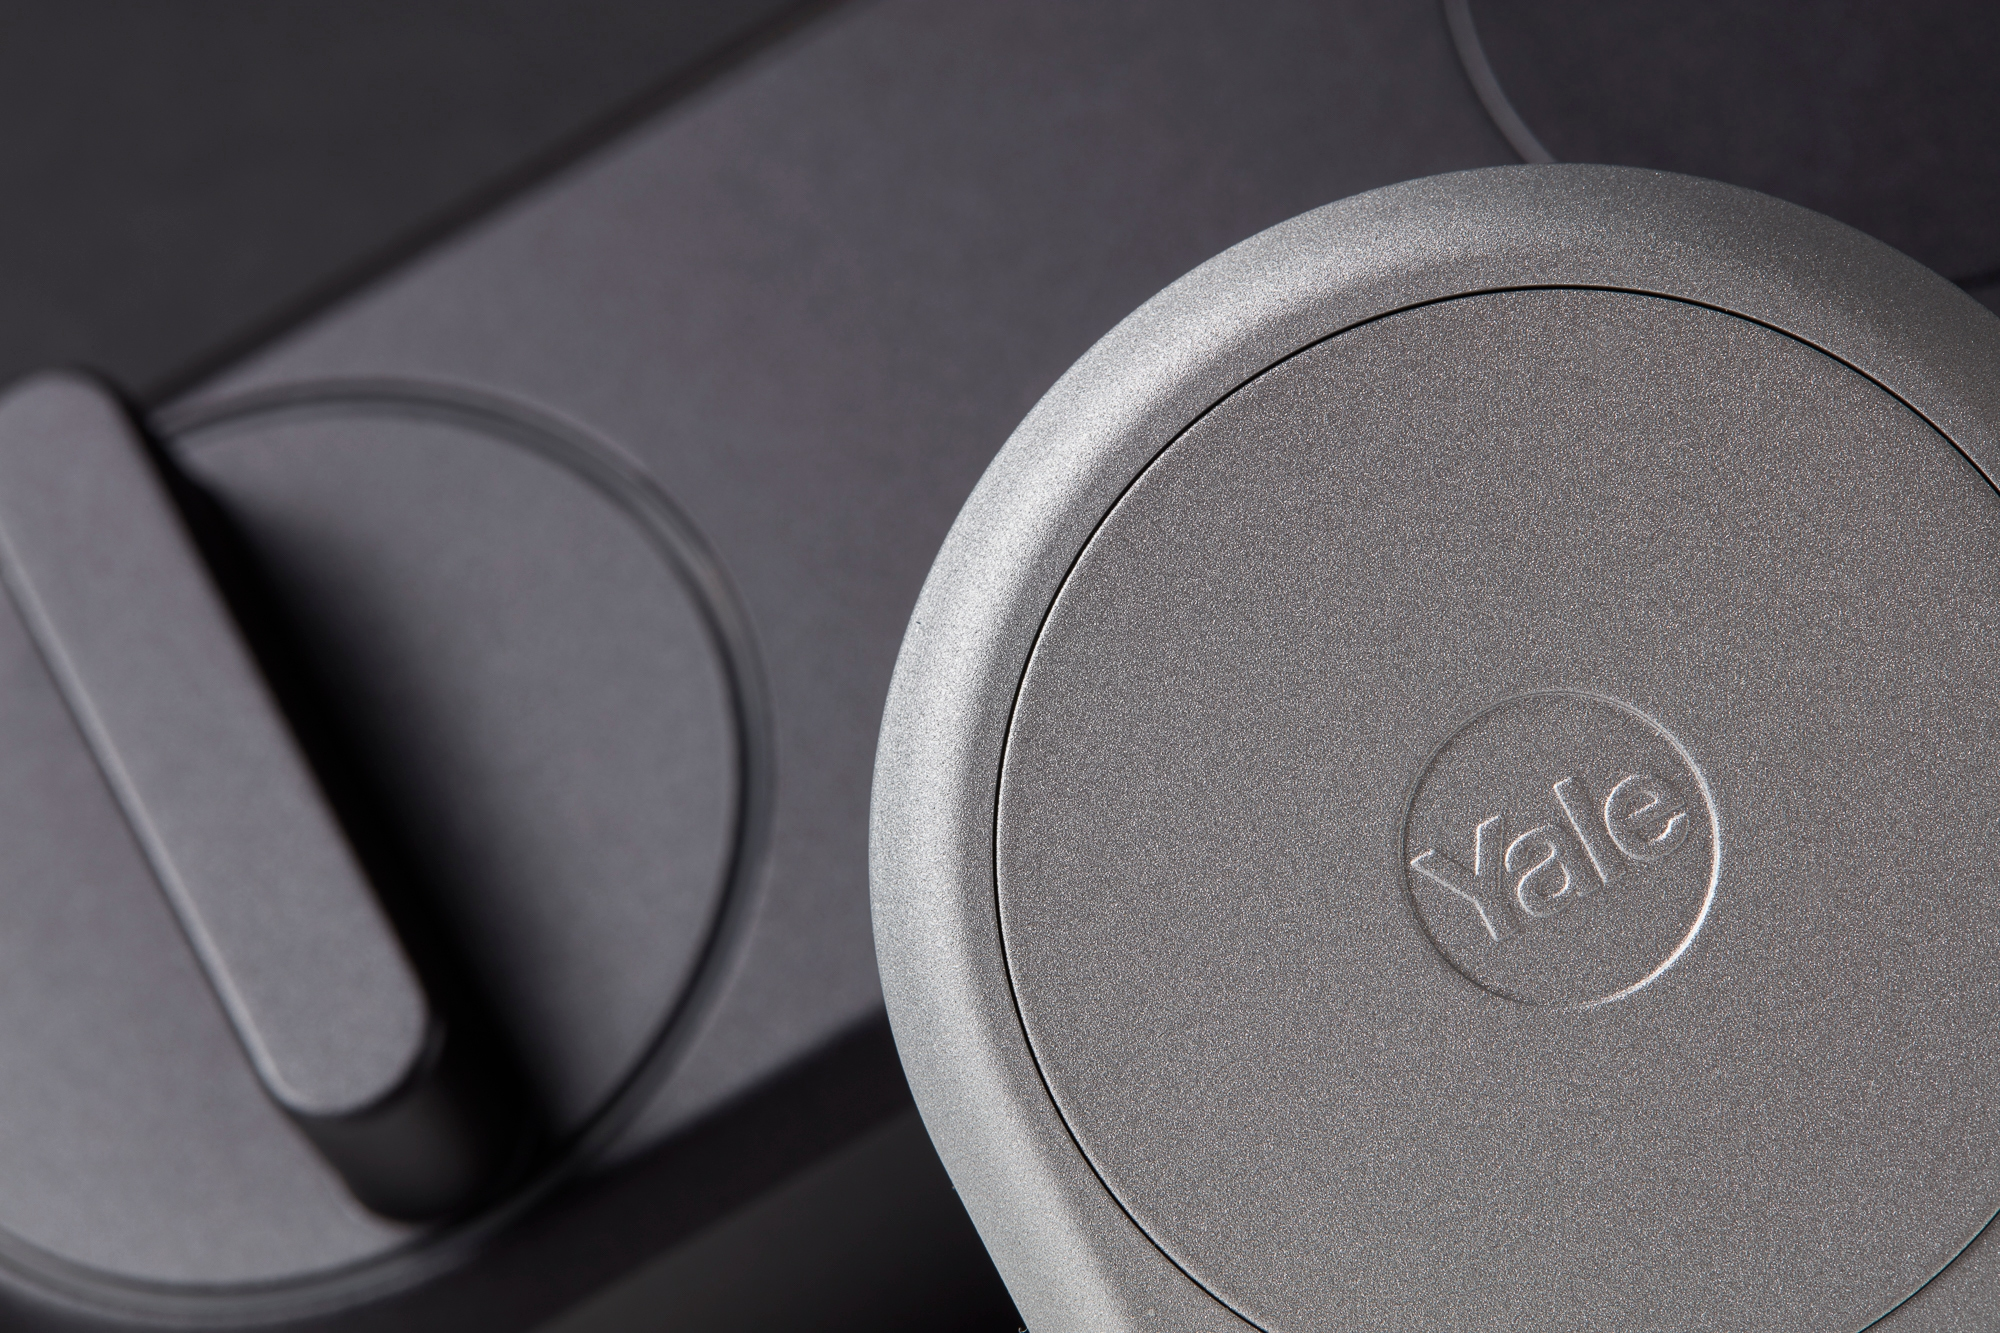 Yale introduces Linus a Smart Lock built on 180 years of security experience